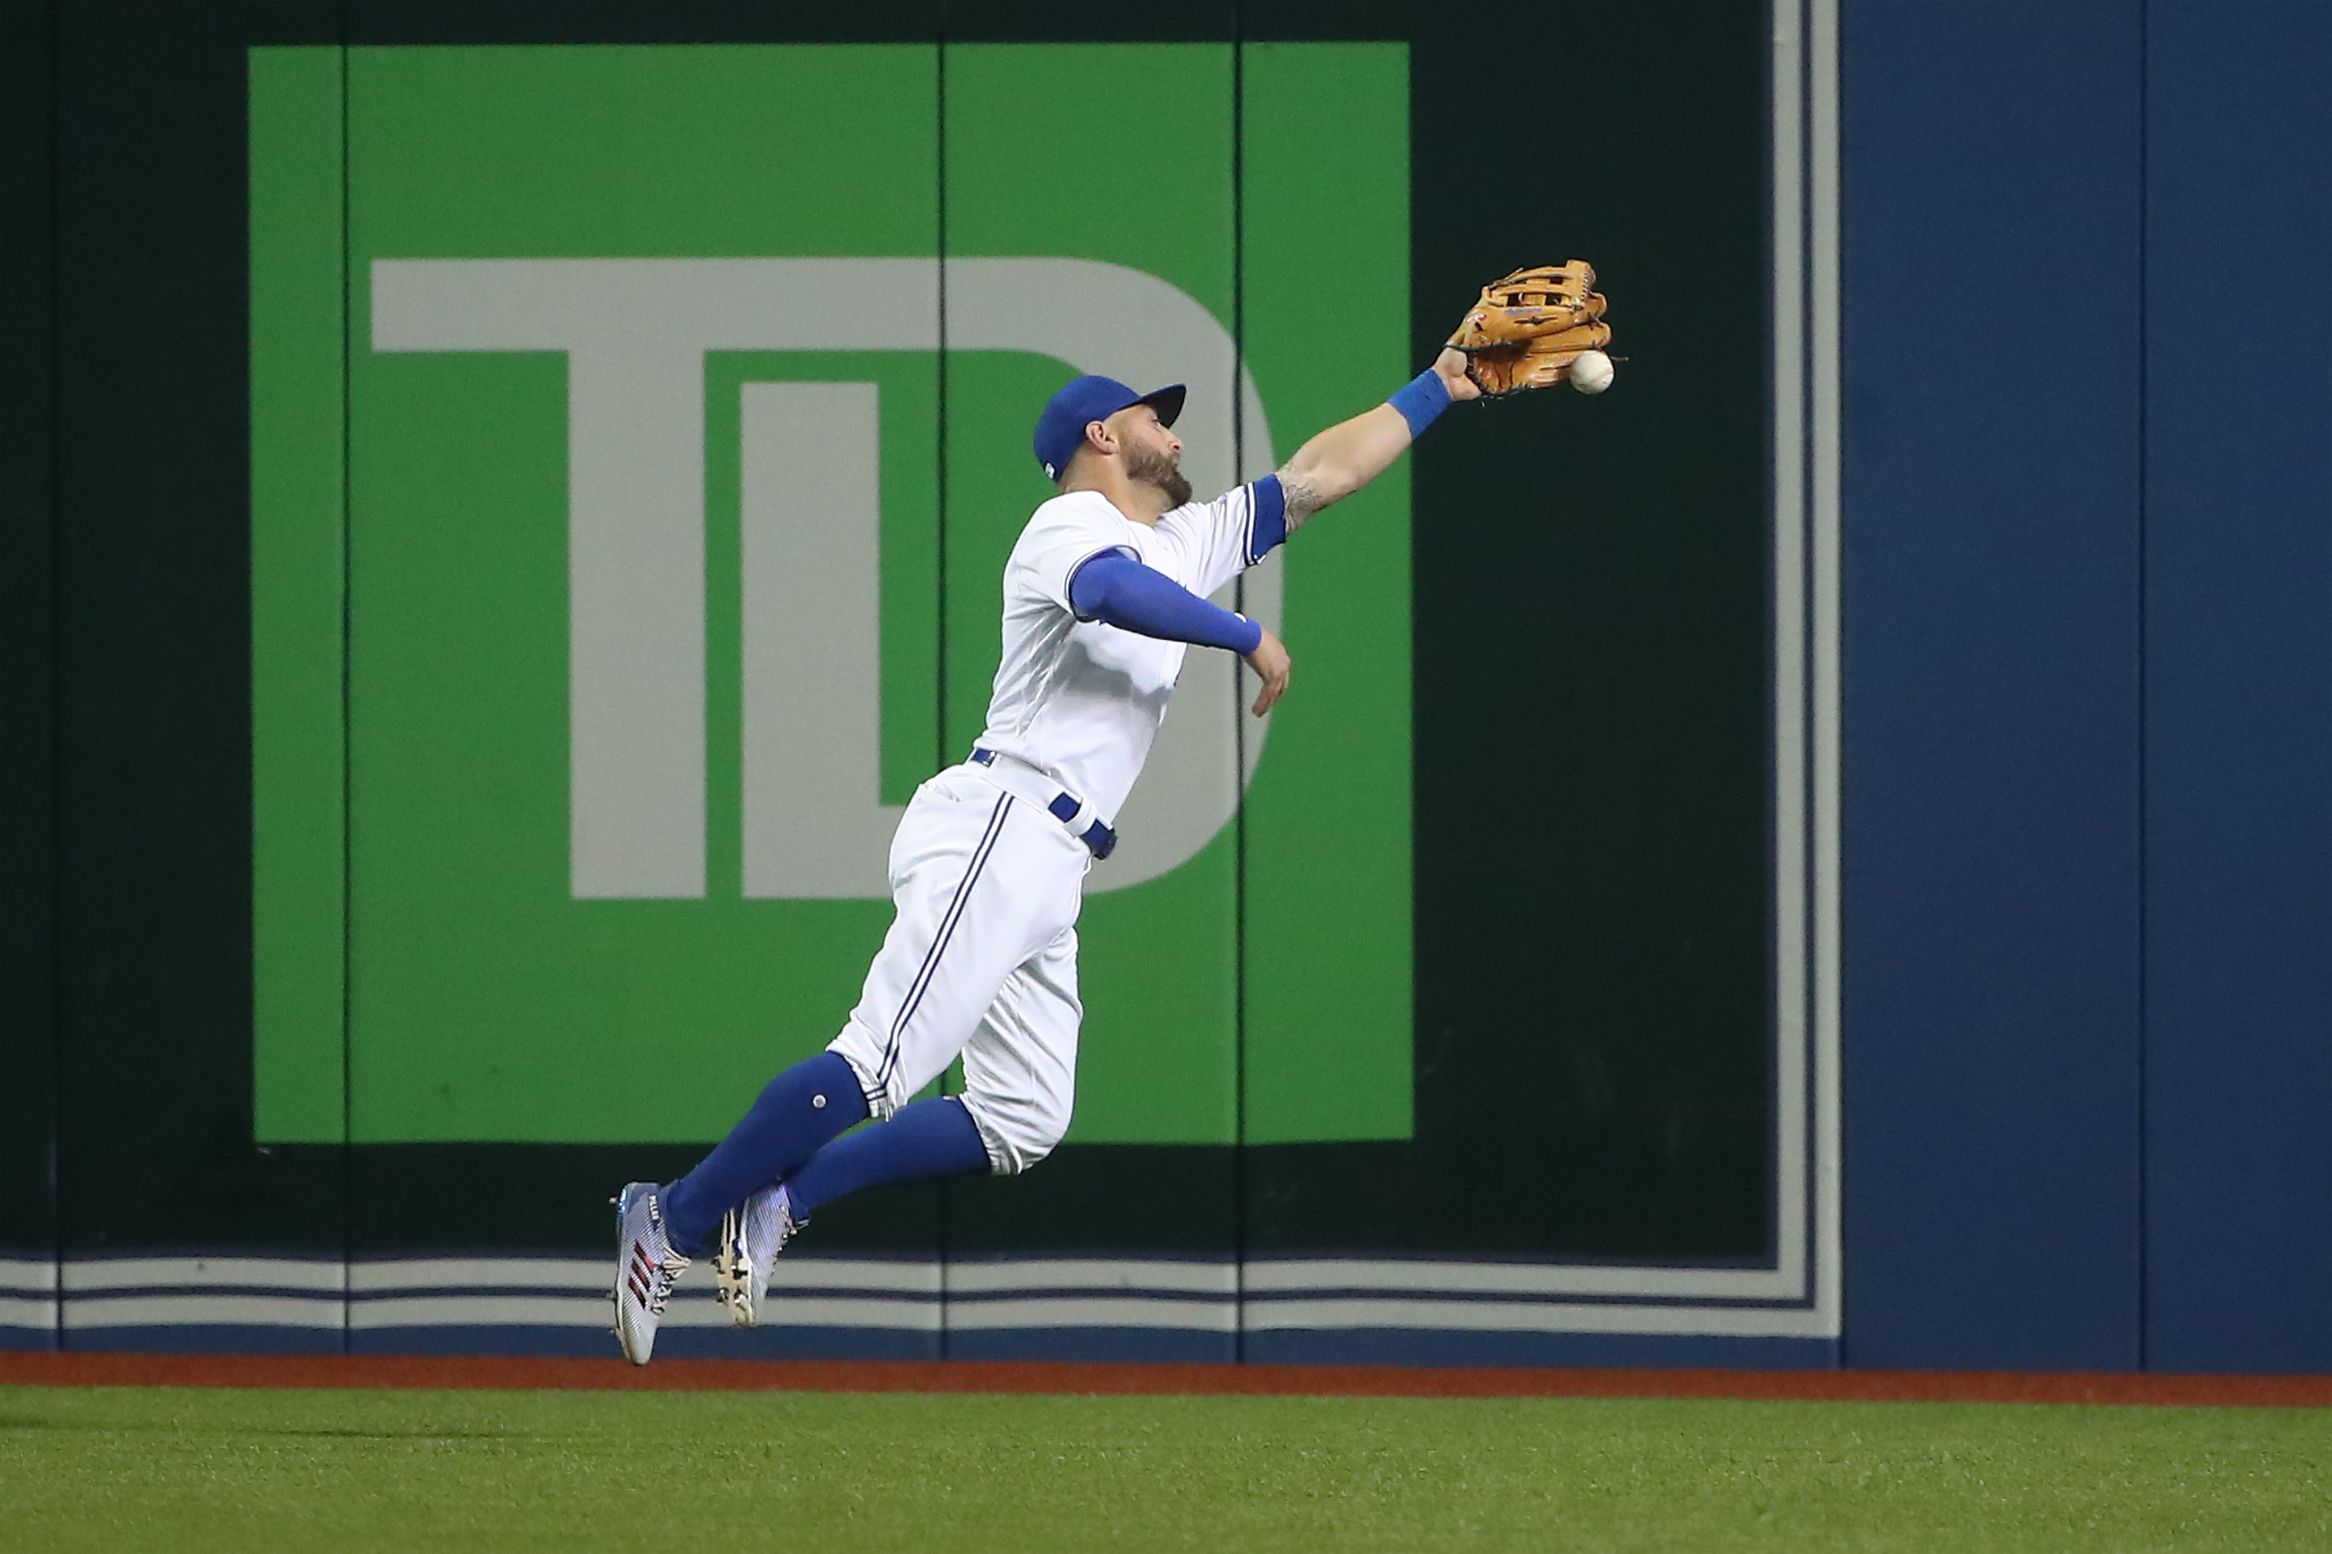 TD in talks to expand banking partnership with Blue Jays: sources